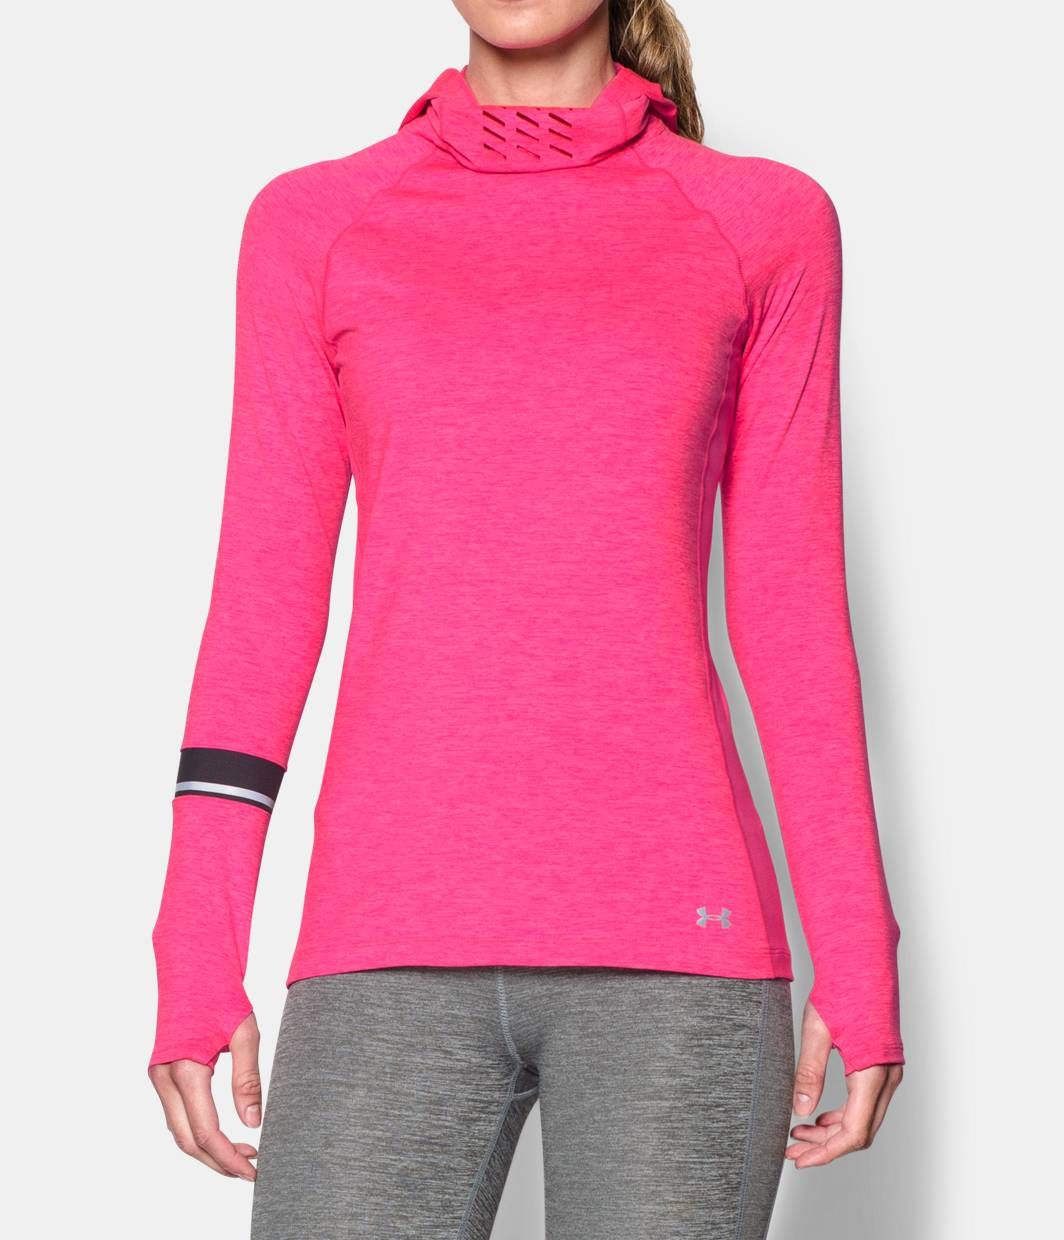 c0b56057972f Shop Under Armour for Women s UA Storm Layered Up Hoodie in our Womens Tops  department. Free shipping is available in US.